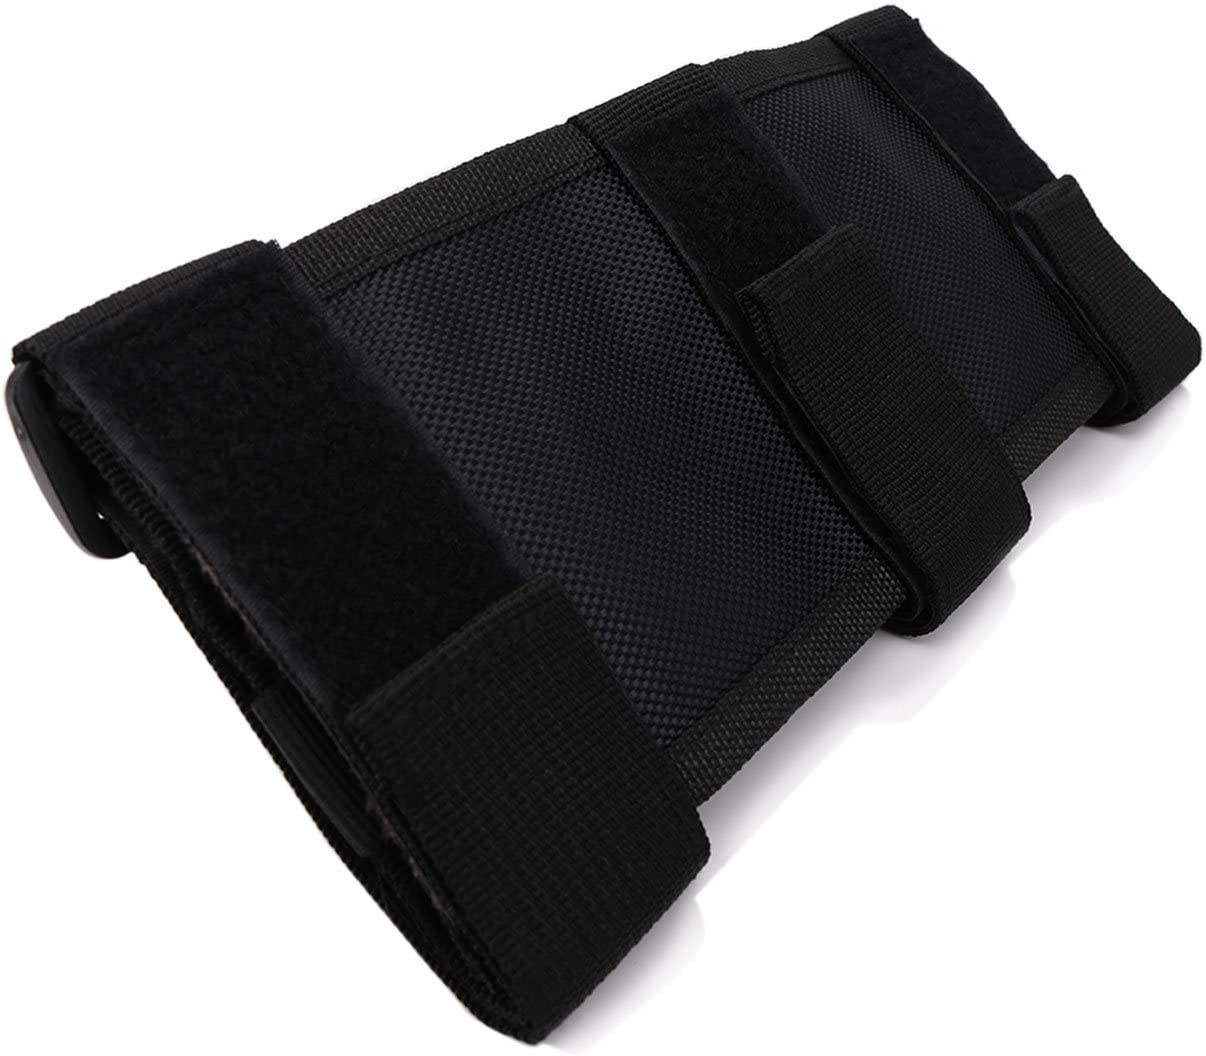 ATV Strap Fits 2 to 3 Inch Bars for Most Jeep Wrangler Models 1986-2020 1 Piece,Black Jade Onlines Paracord Roll Bar Grab Handles Grip Handles Roll Bar Grab Handle Grip Fit for Jeep UTV